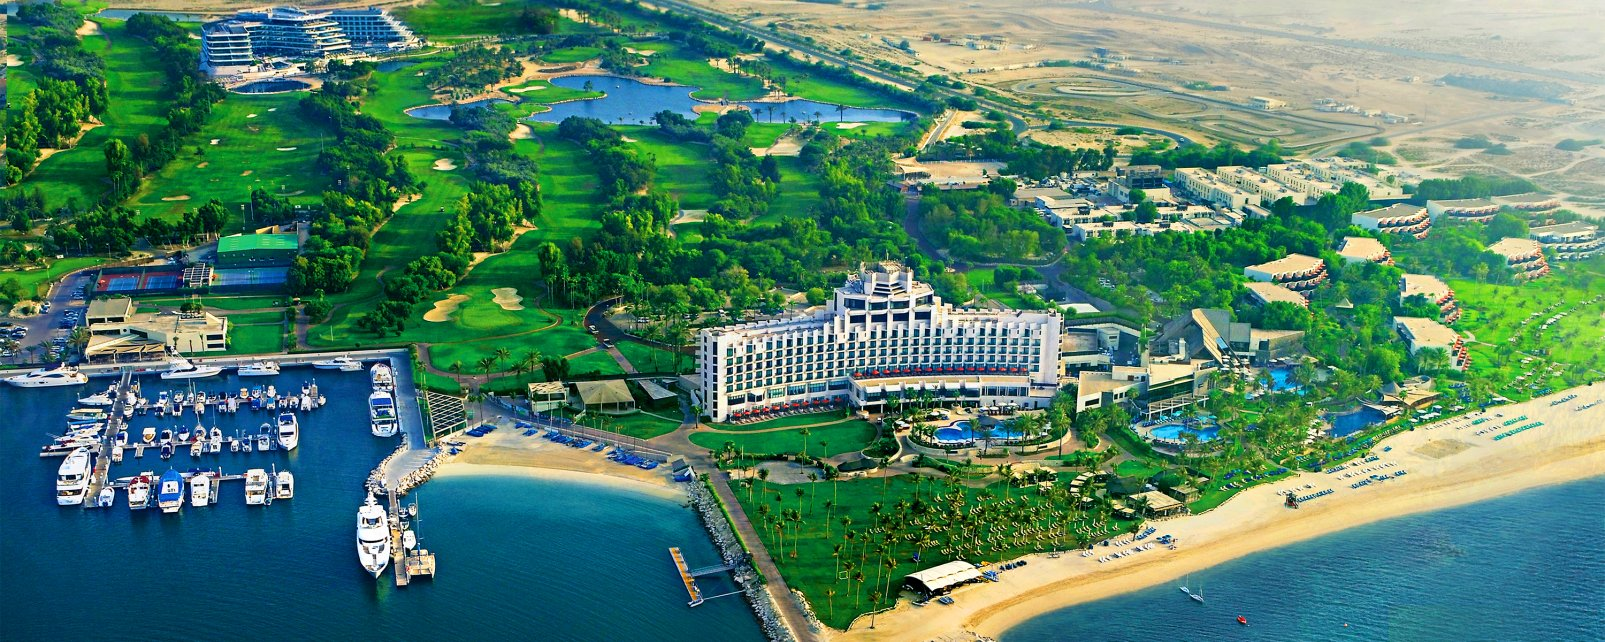 Ôclub Premium Jebel Ali Beach Resort